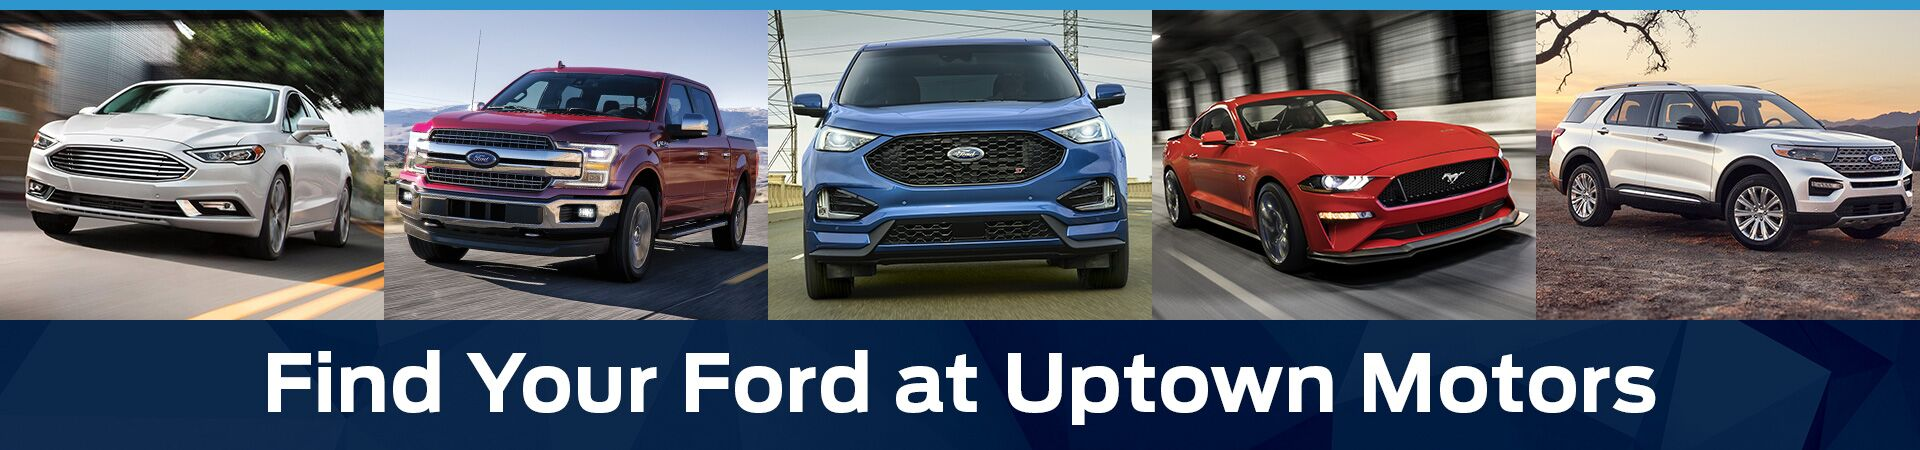 Find Your Ford Here at Uptown Motors